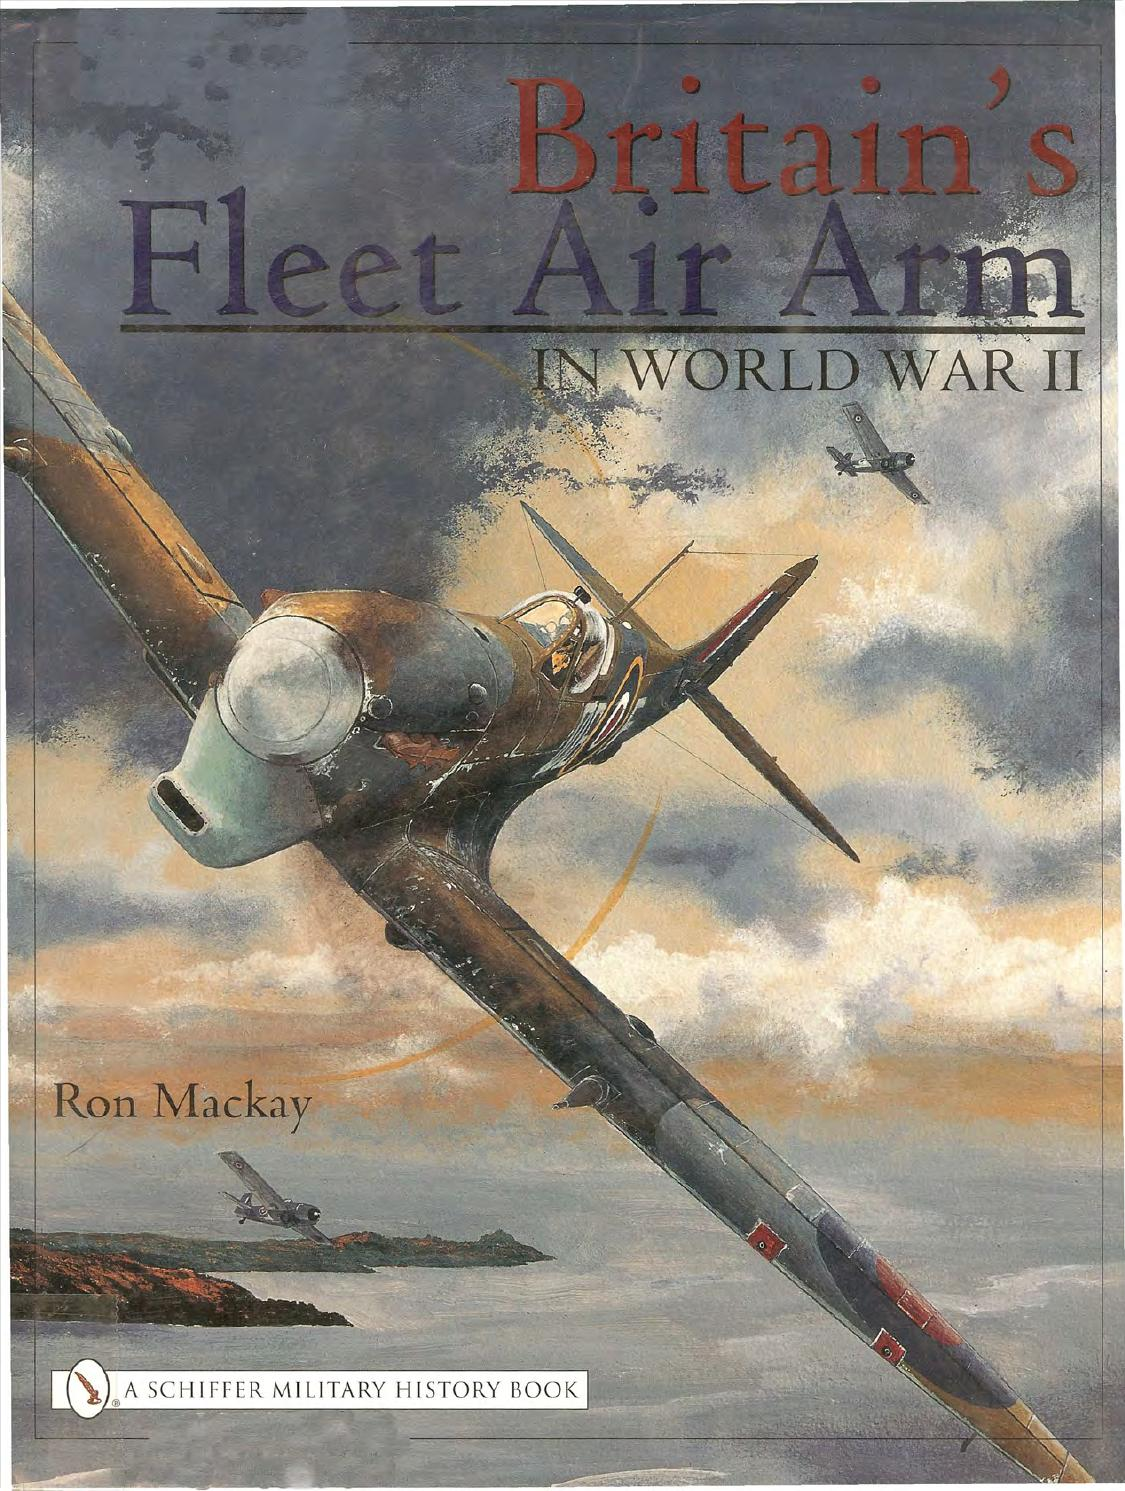 Britain's fleet air arm in world war ii schiffer's military history low res by Luis Carrasco - Issuu